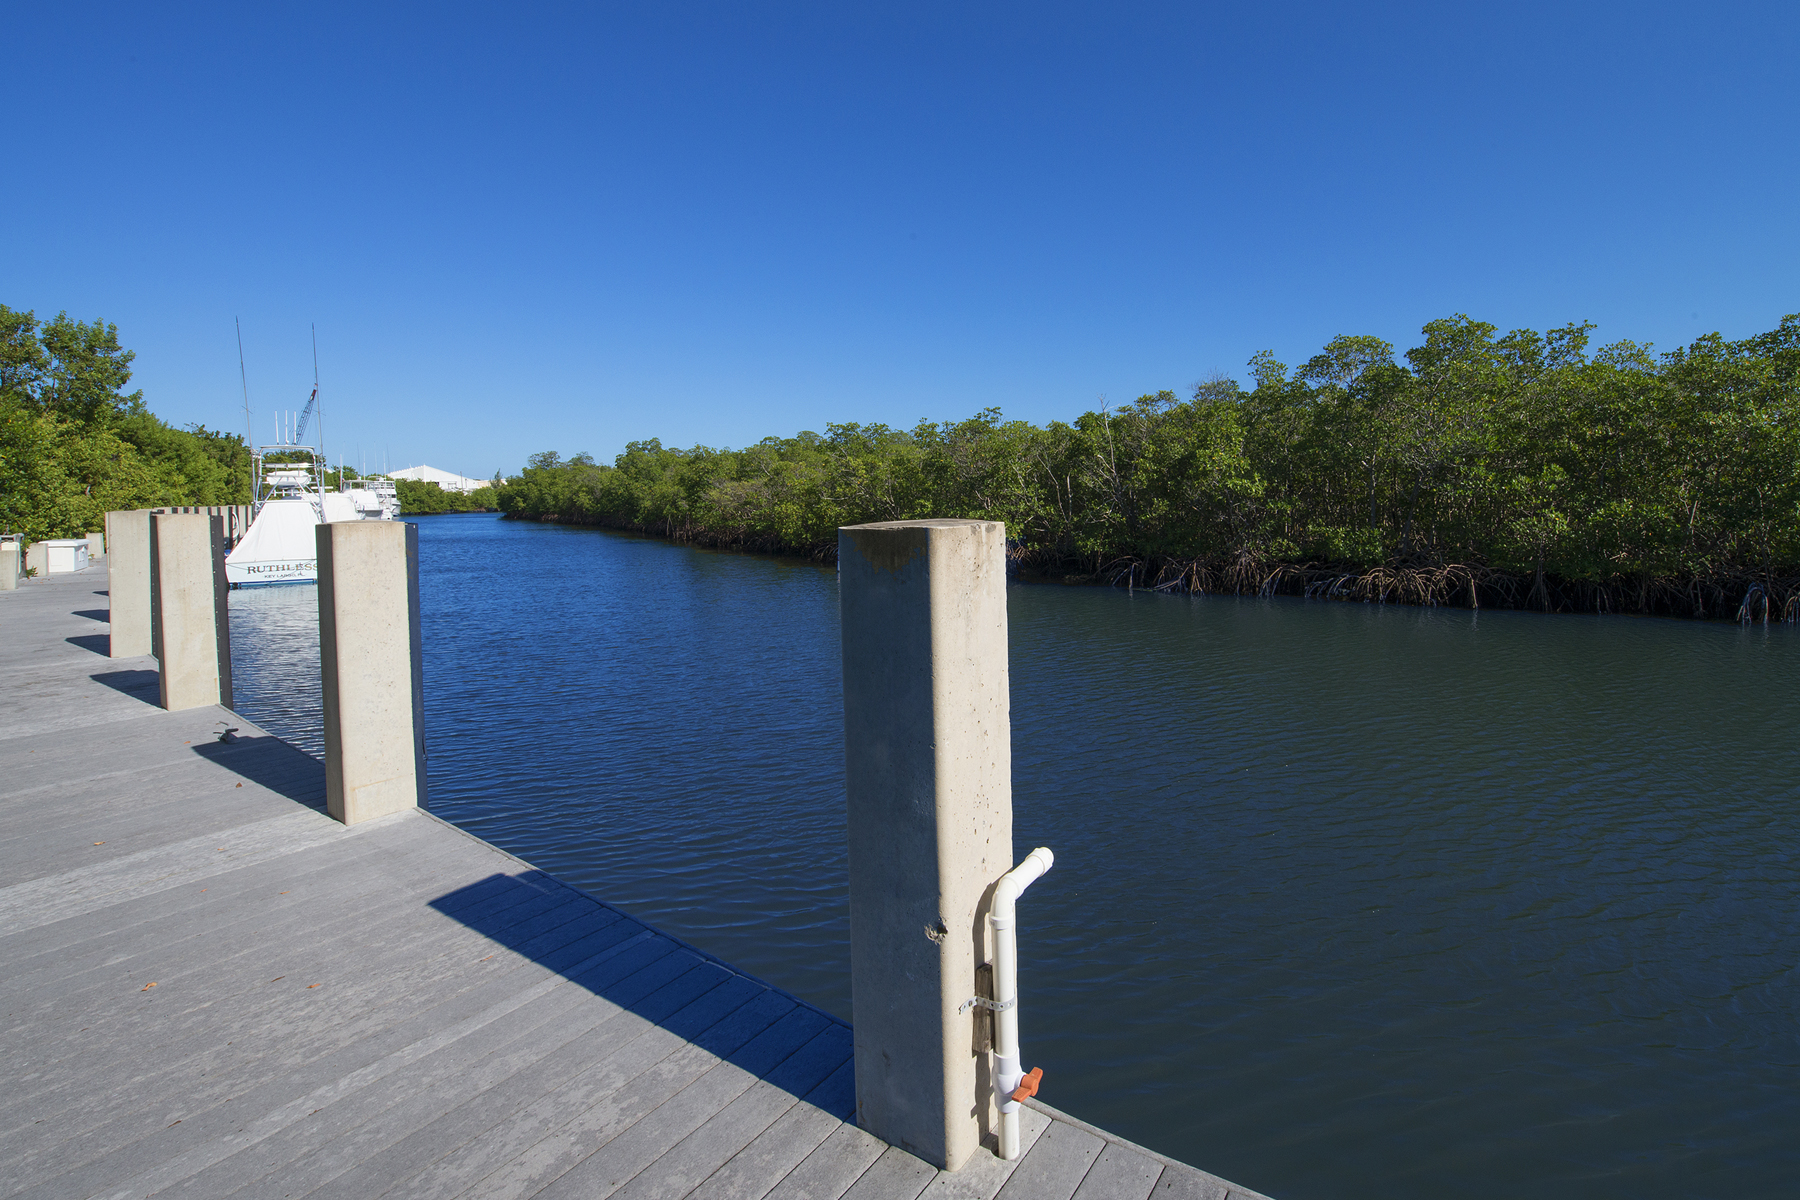 Additional photo for property listing at Prime Dockage Location at Ocean Reef 11 Gate House Road, Dock AS-11 Key Largo, Florida 33037 Amerika Birleşik Devletleri